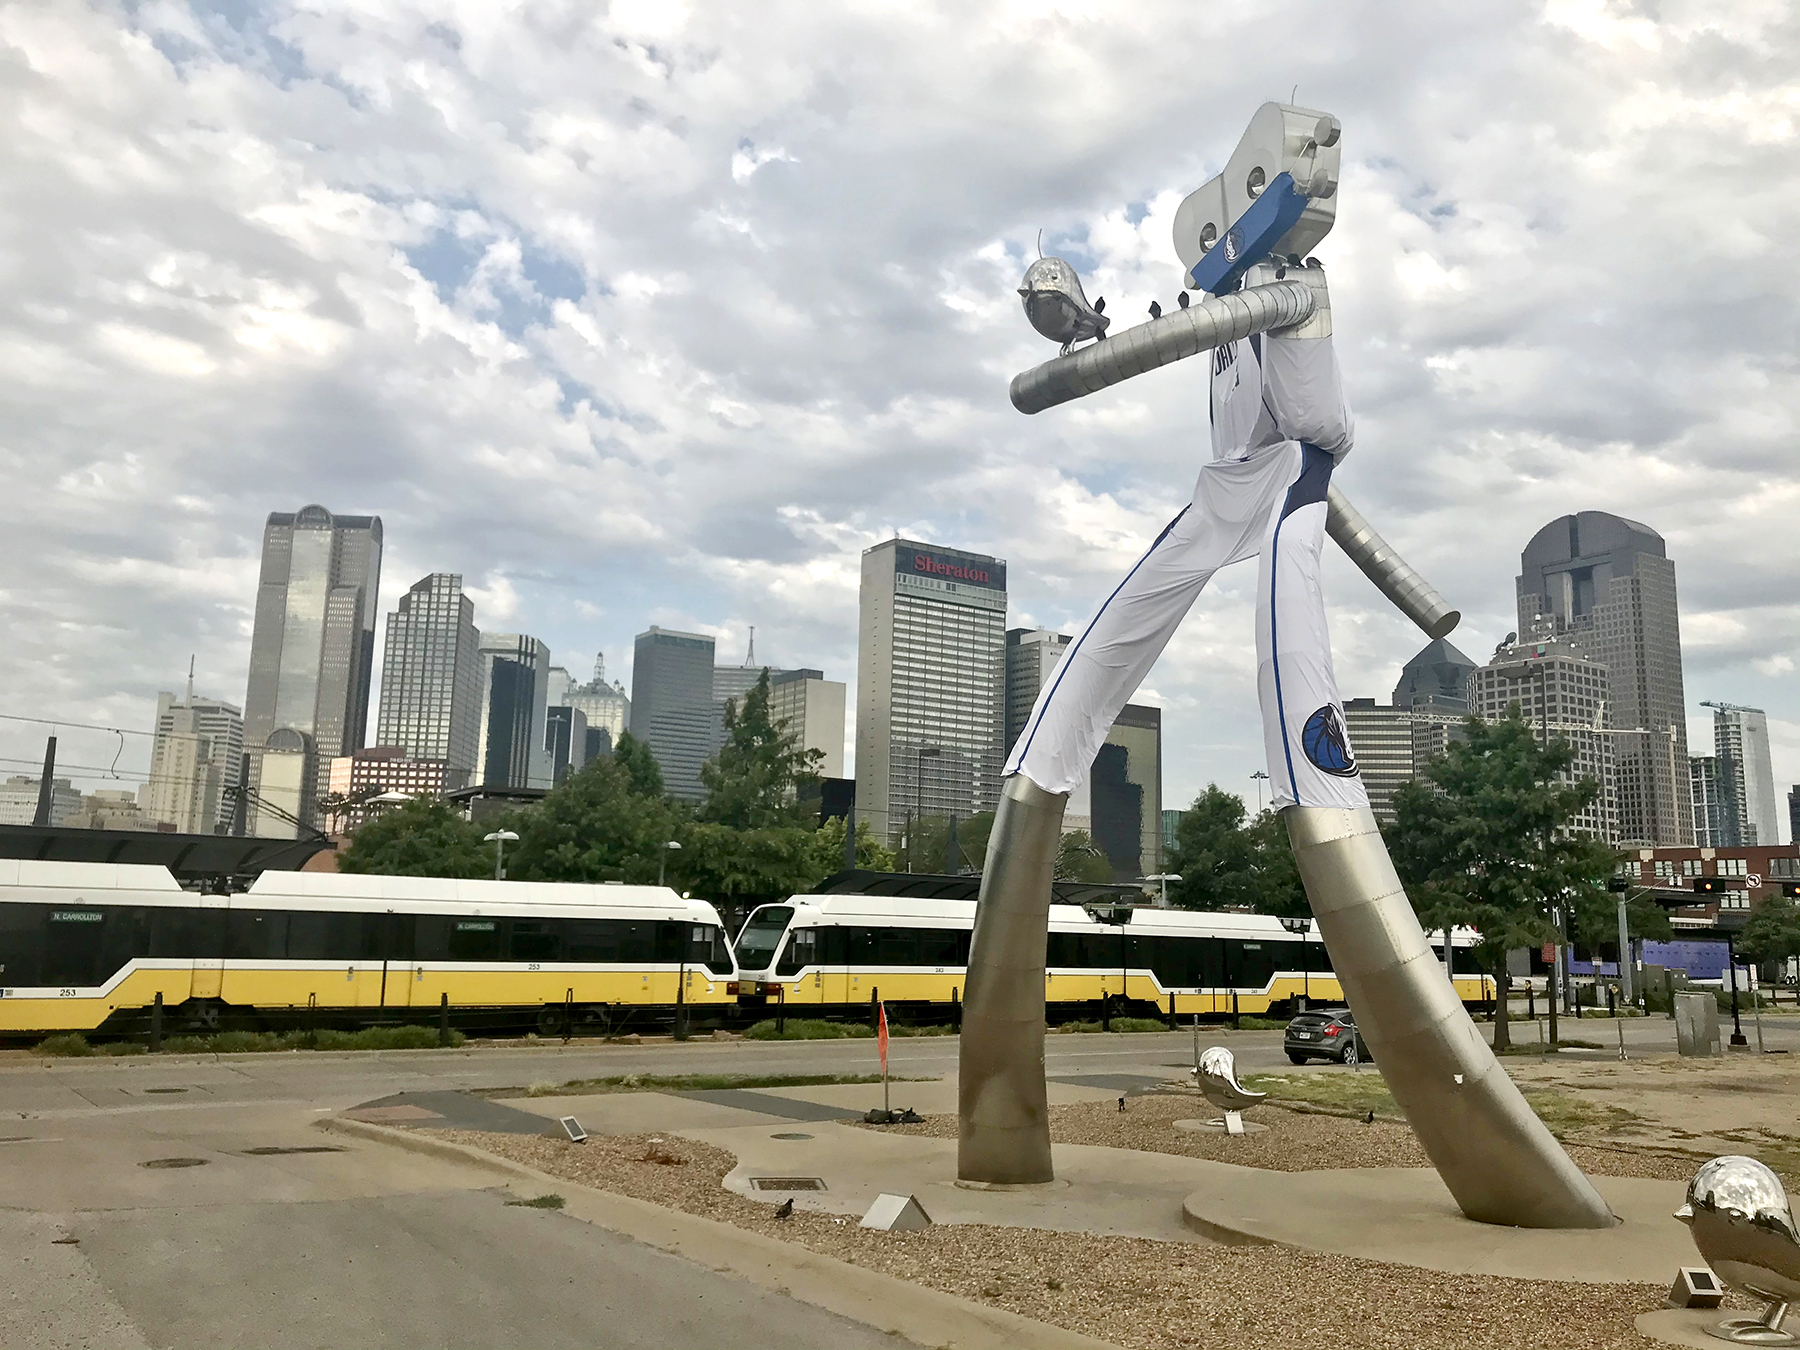 A DART train passes by Deep Ellum Station next to The Traveling Man sculpture in Dallas.